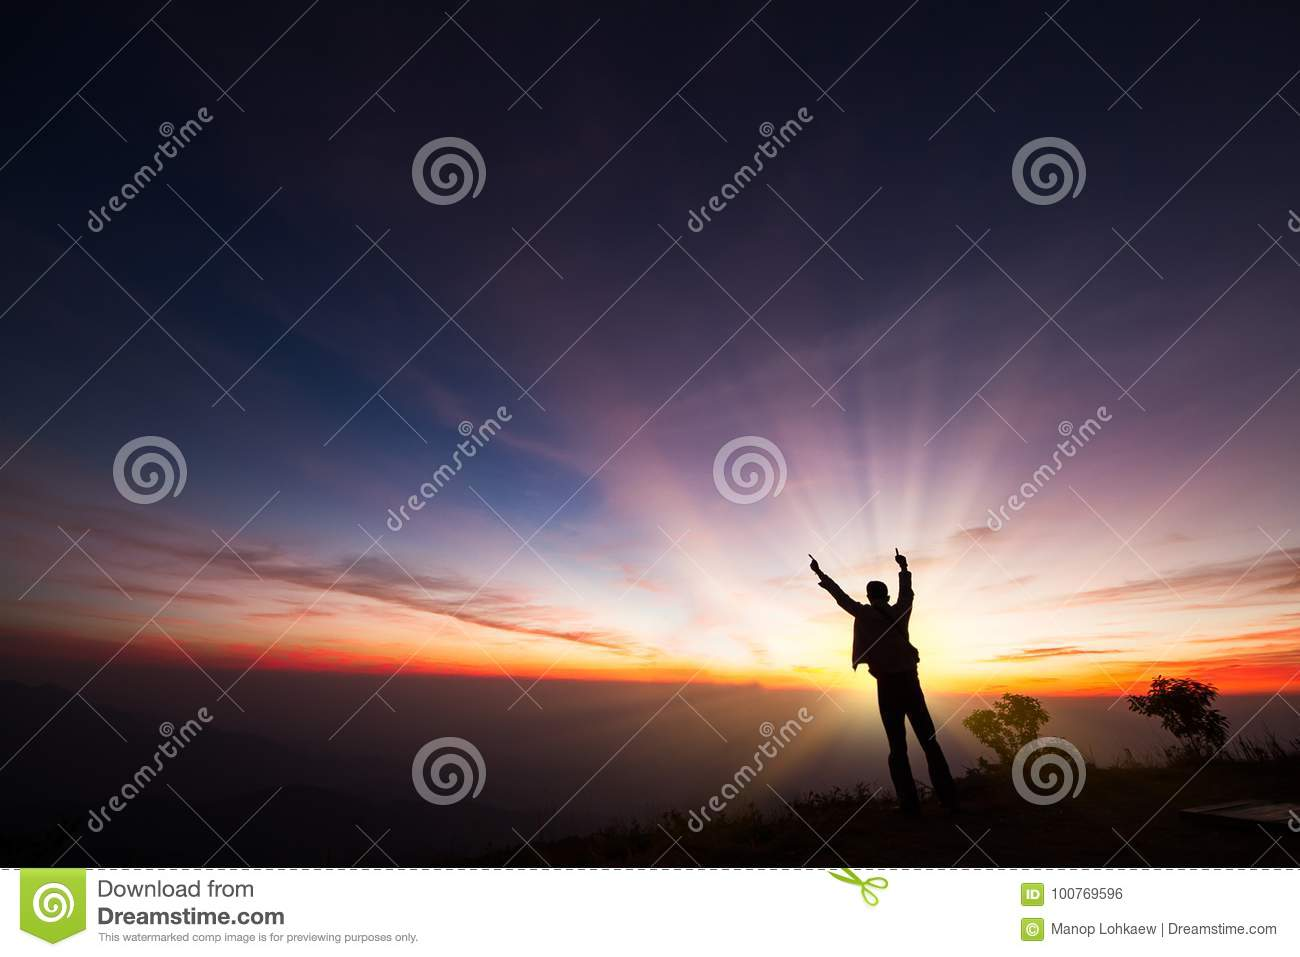 Silhouette of a man standing on the cliff looking at sunrise background, hope and following a dream concept